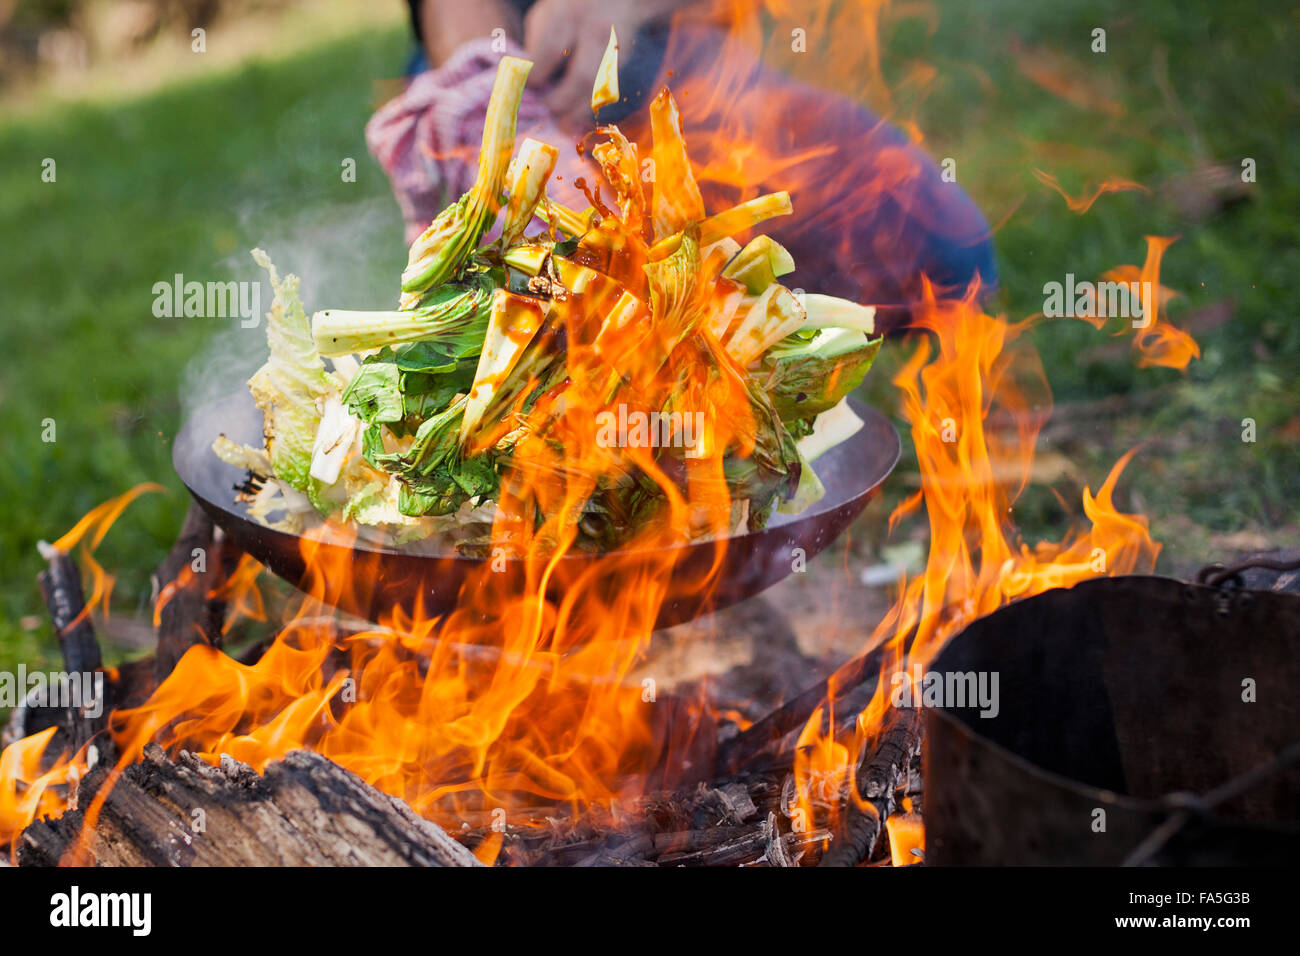 Wok-tossed Asian greens and marinated pork-loin stir-fried over the campfire during a Bogong Horseback Adventure. - Stock Image